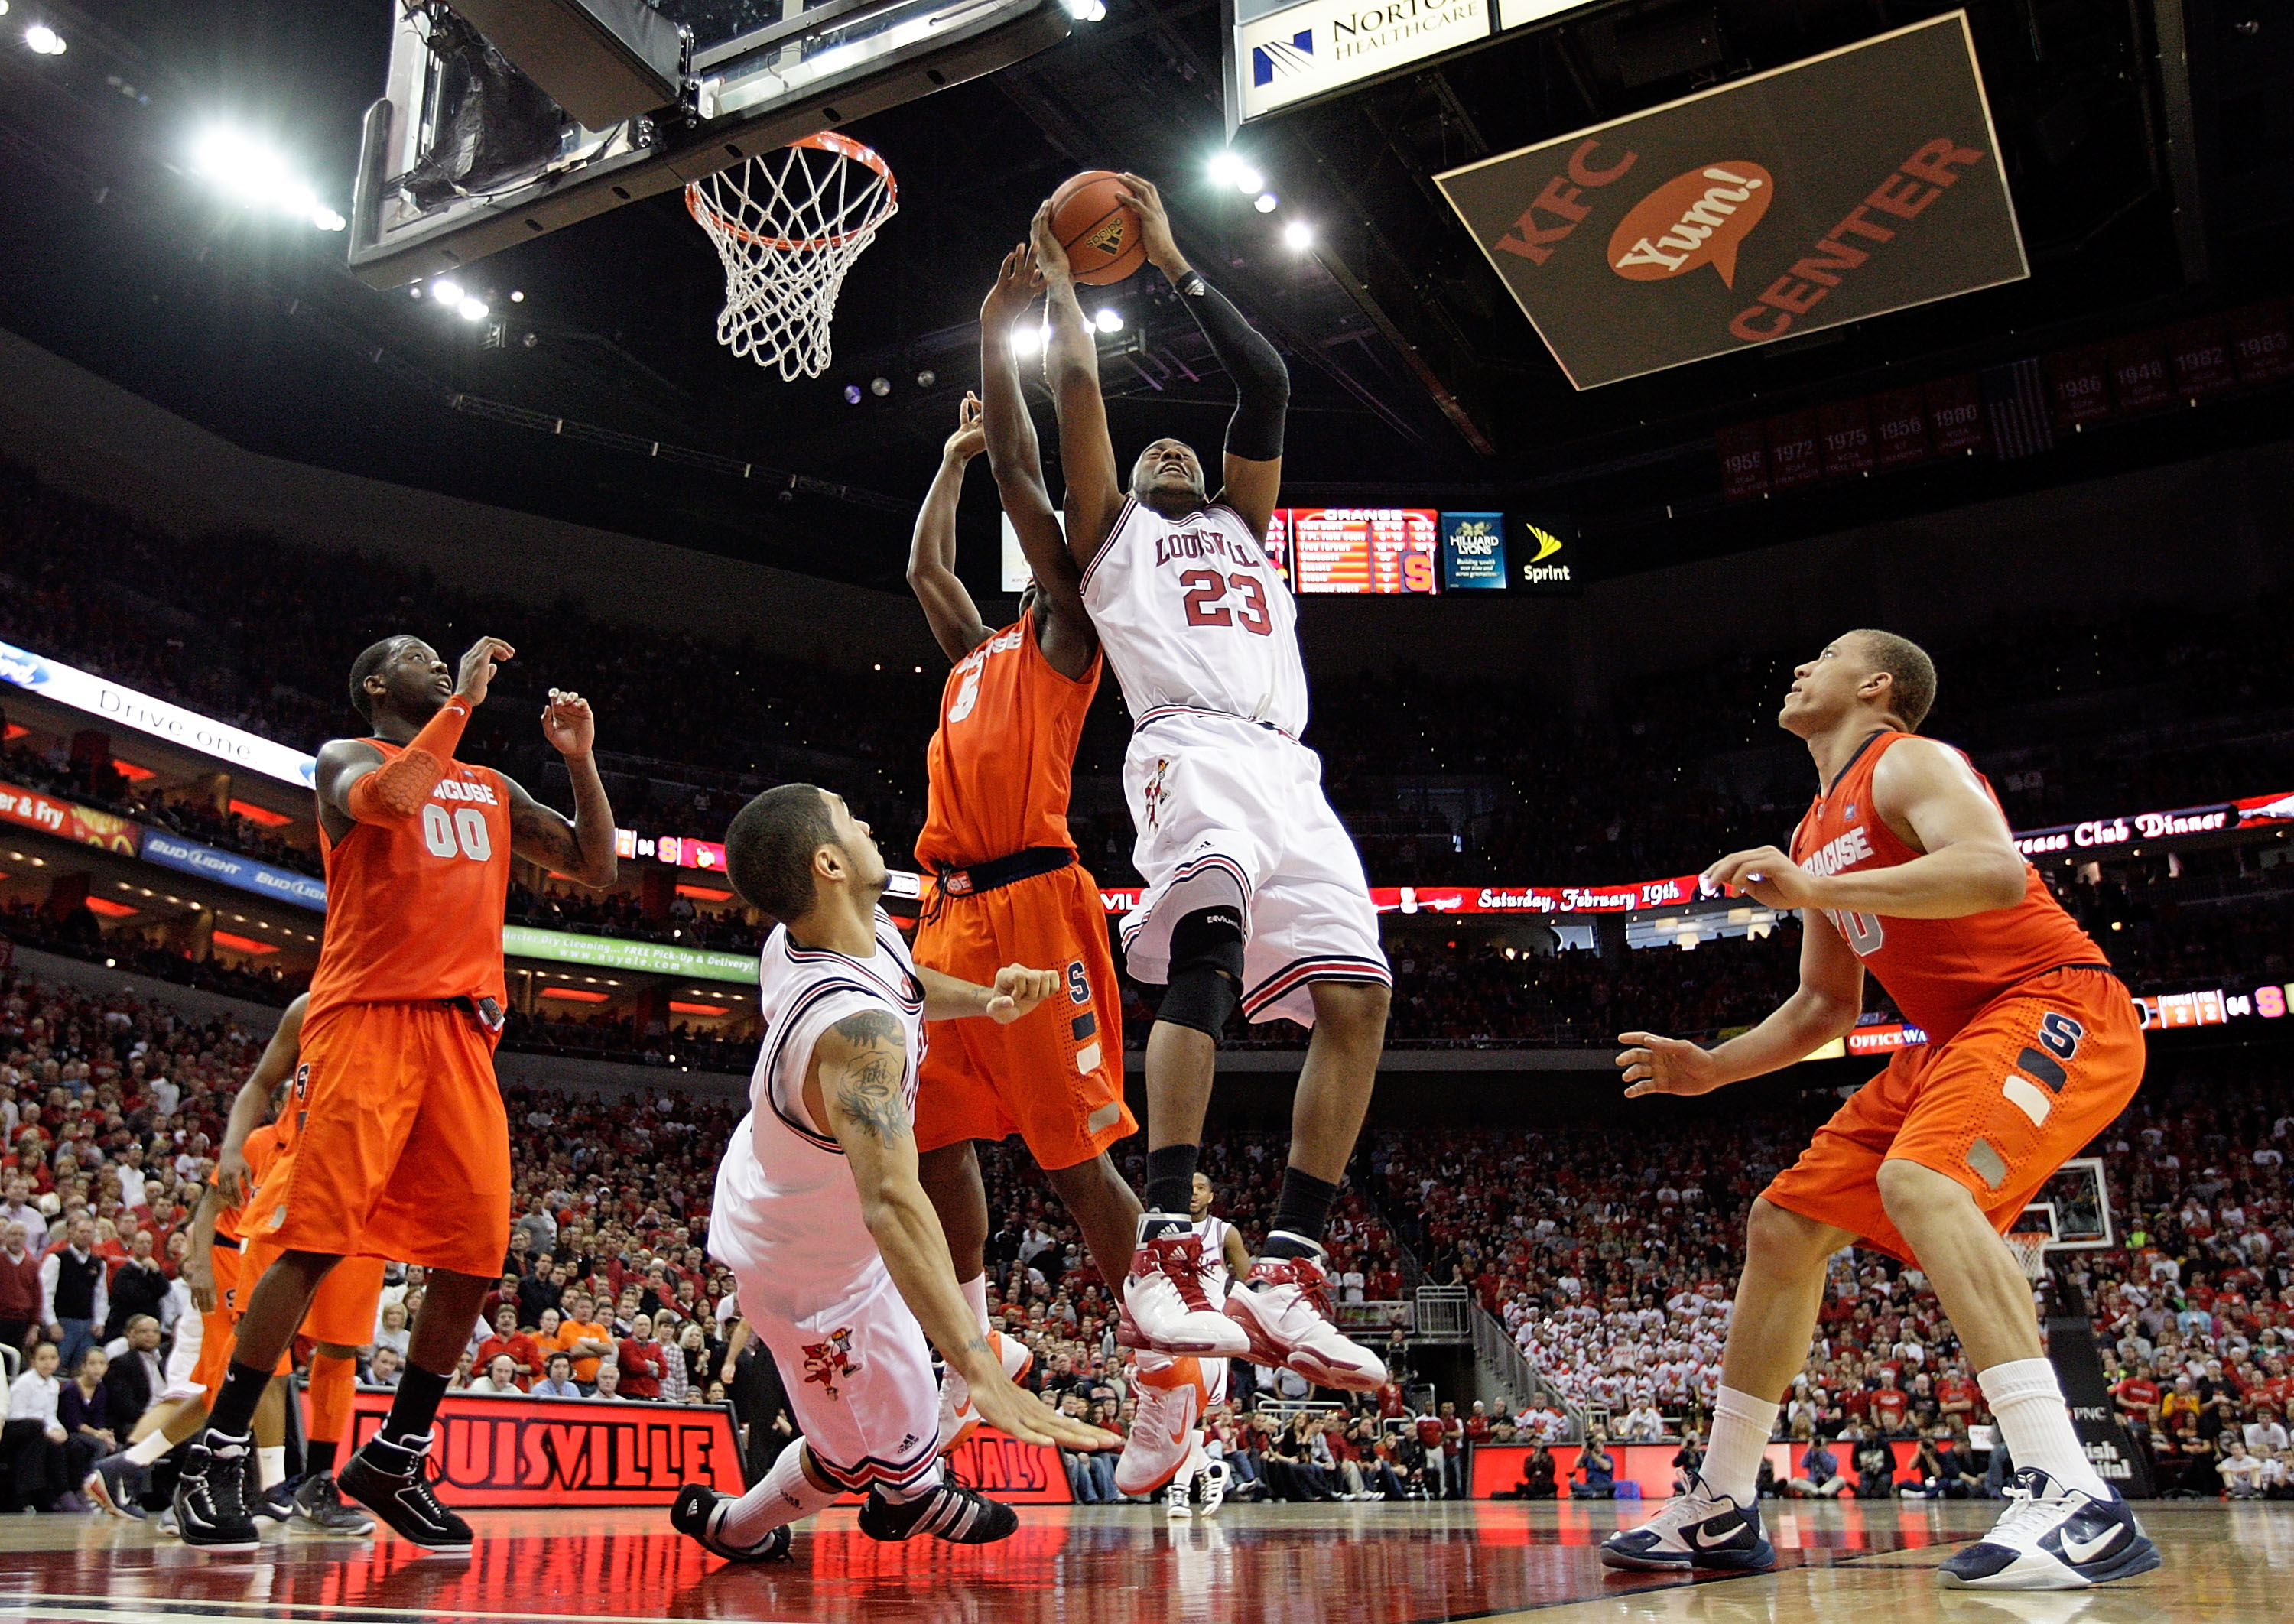 LOUISVILLE, KY - FEBRUARY 12:  Terrence Jennings #23 of the Louisville Cardinals reaches for a rebound  during the Big East Conference game against the Syracuse Orange at the KFC Yum! Center on February 12, 2011 in Louisville, Kentucky.  Louisville won73-